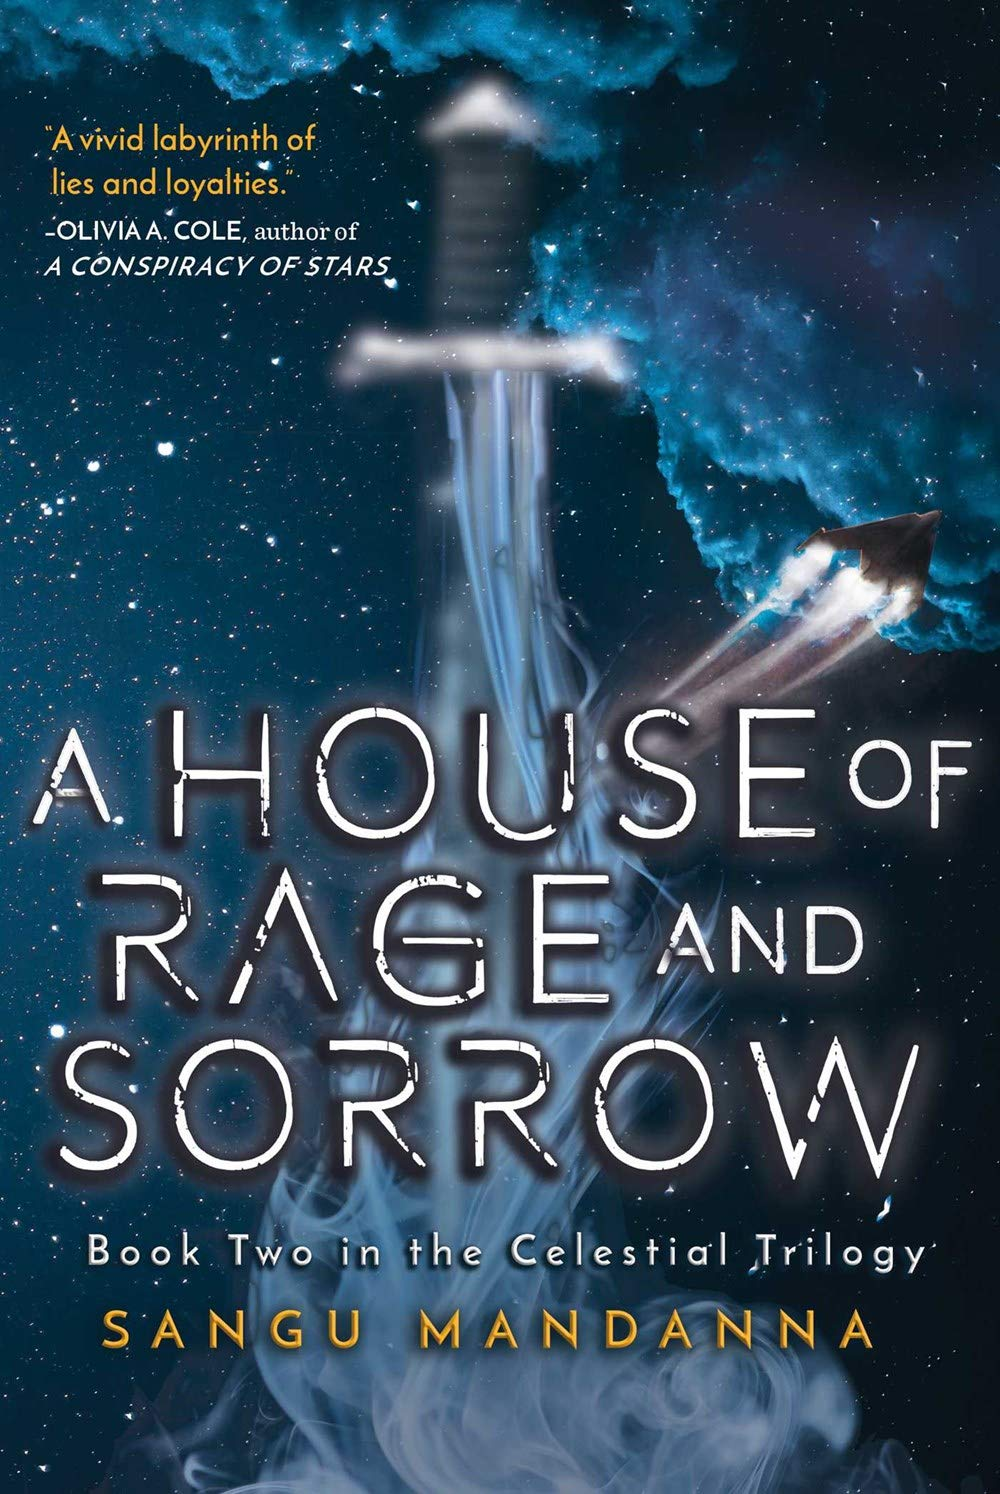 Amazon.com: House of Rage and Sorrow: Book Two in the Celestial Trilogy  (9781510733794): Mandanna, Sangu: Books